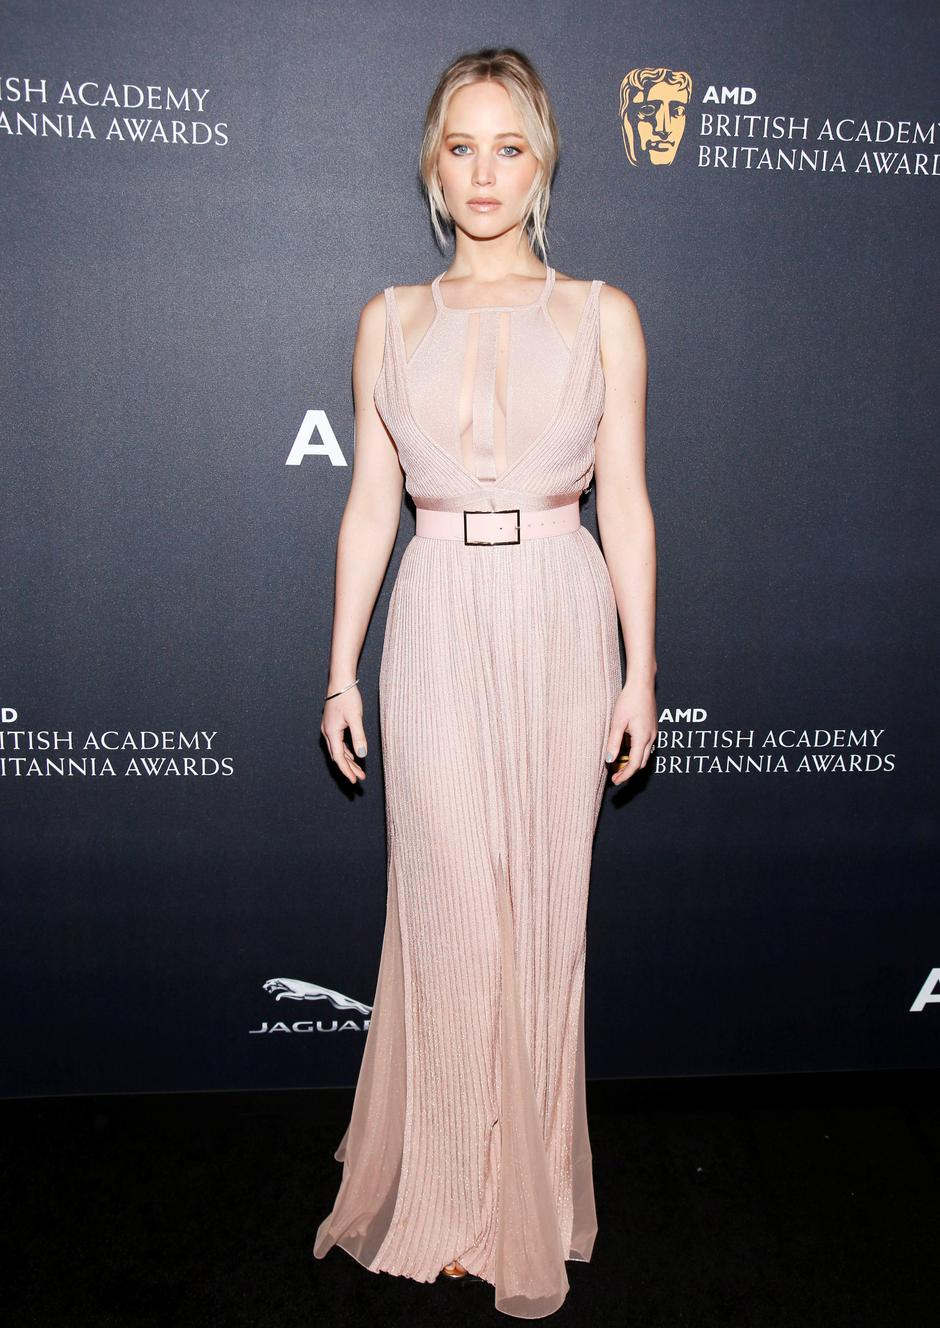 Actor Jennifer Lawrence poses at the British Academy of Film and Television Arts (BAFTA) Los Angeles' Britannia Awards in Beverly Hills | Autor: DANNY MOLOSHOK